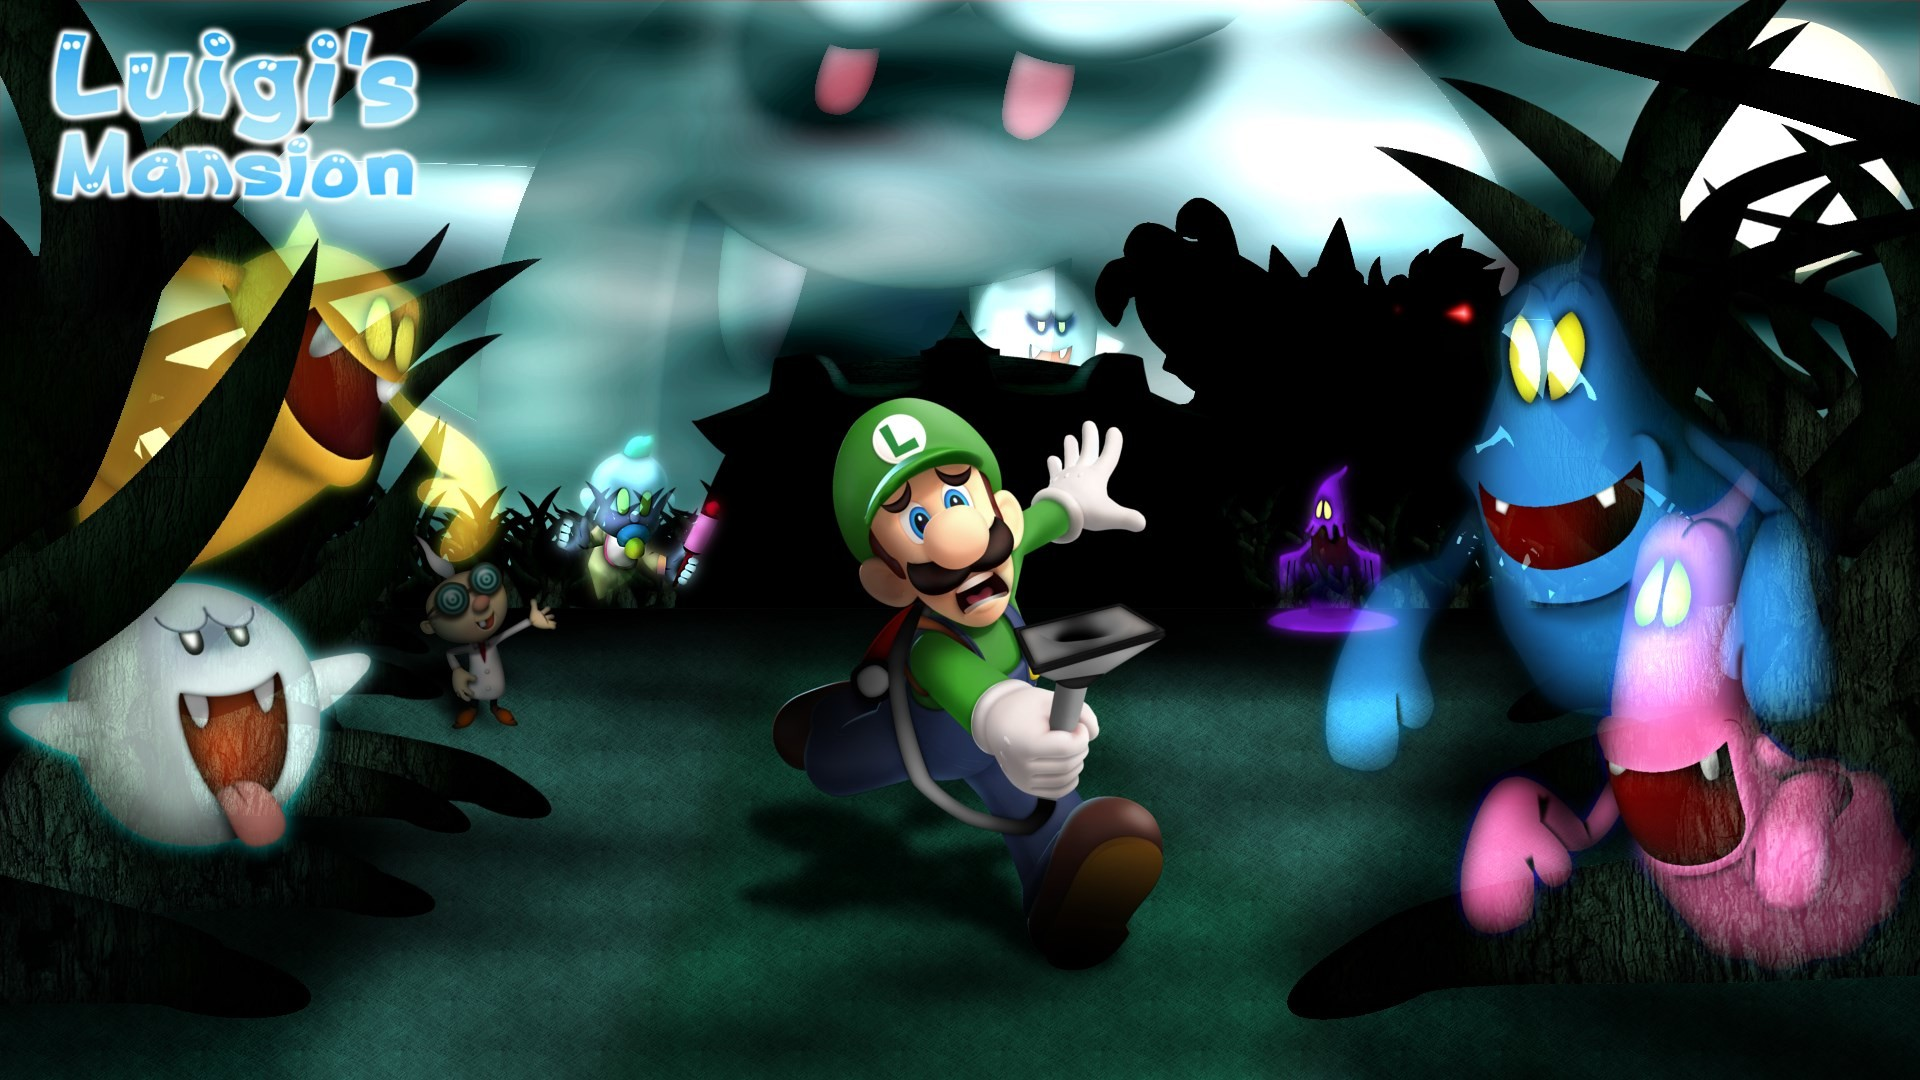 free screensaver wallpapers for luigis mansion, Hopkins Sinclair 2017-03-22